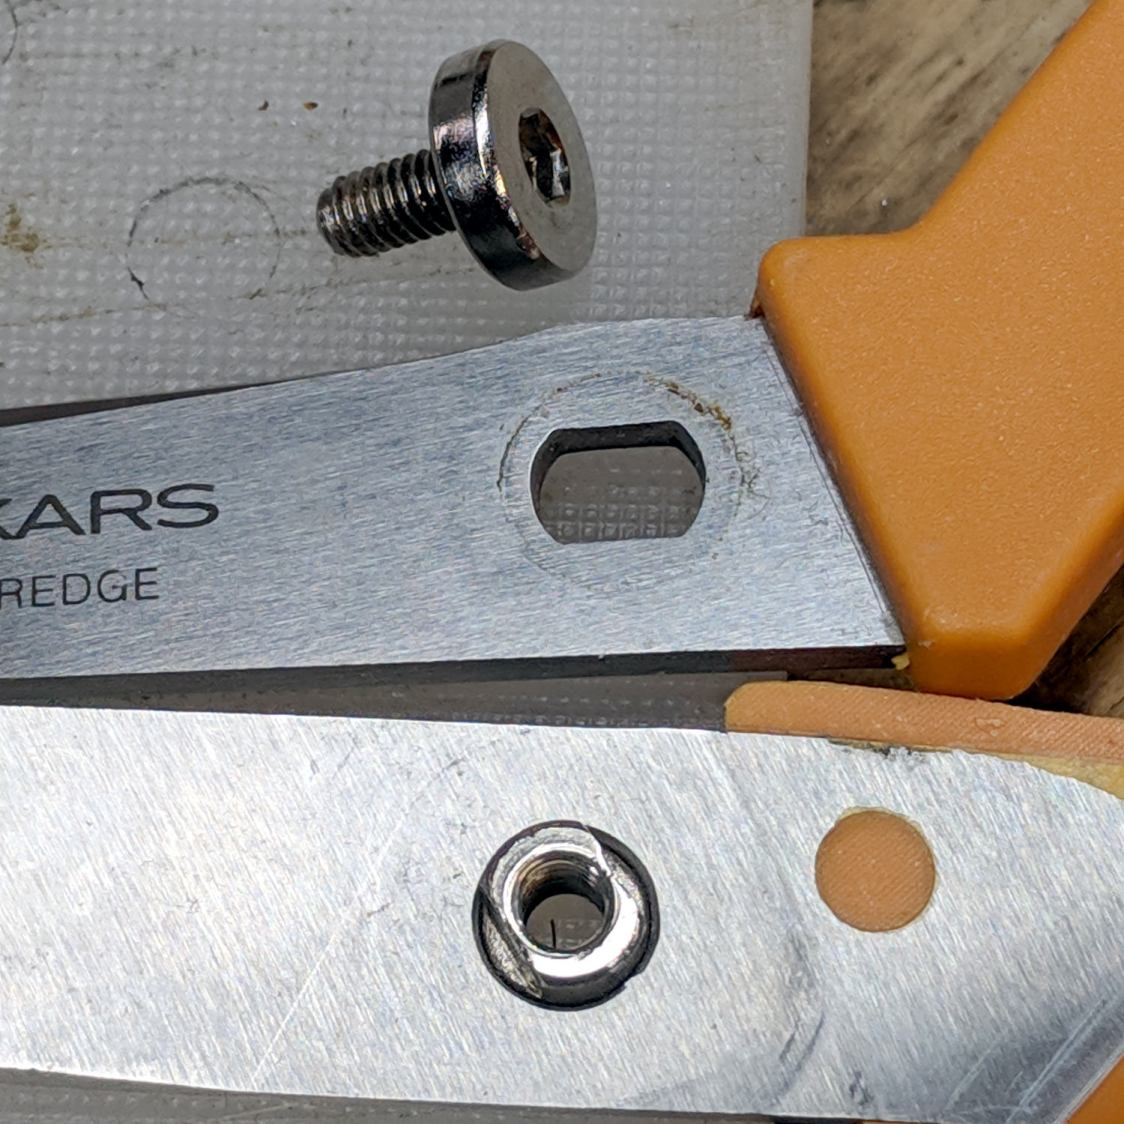 Fiskars scissors - pivot nut in place